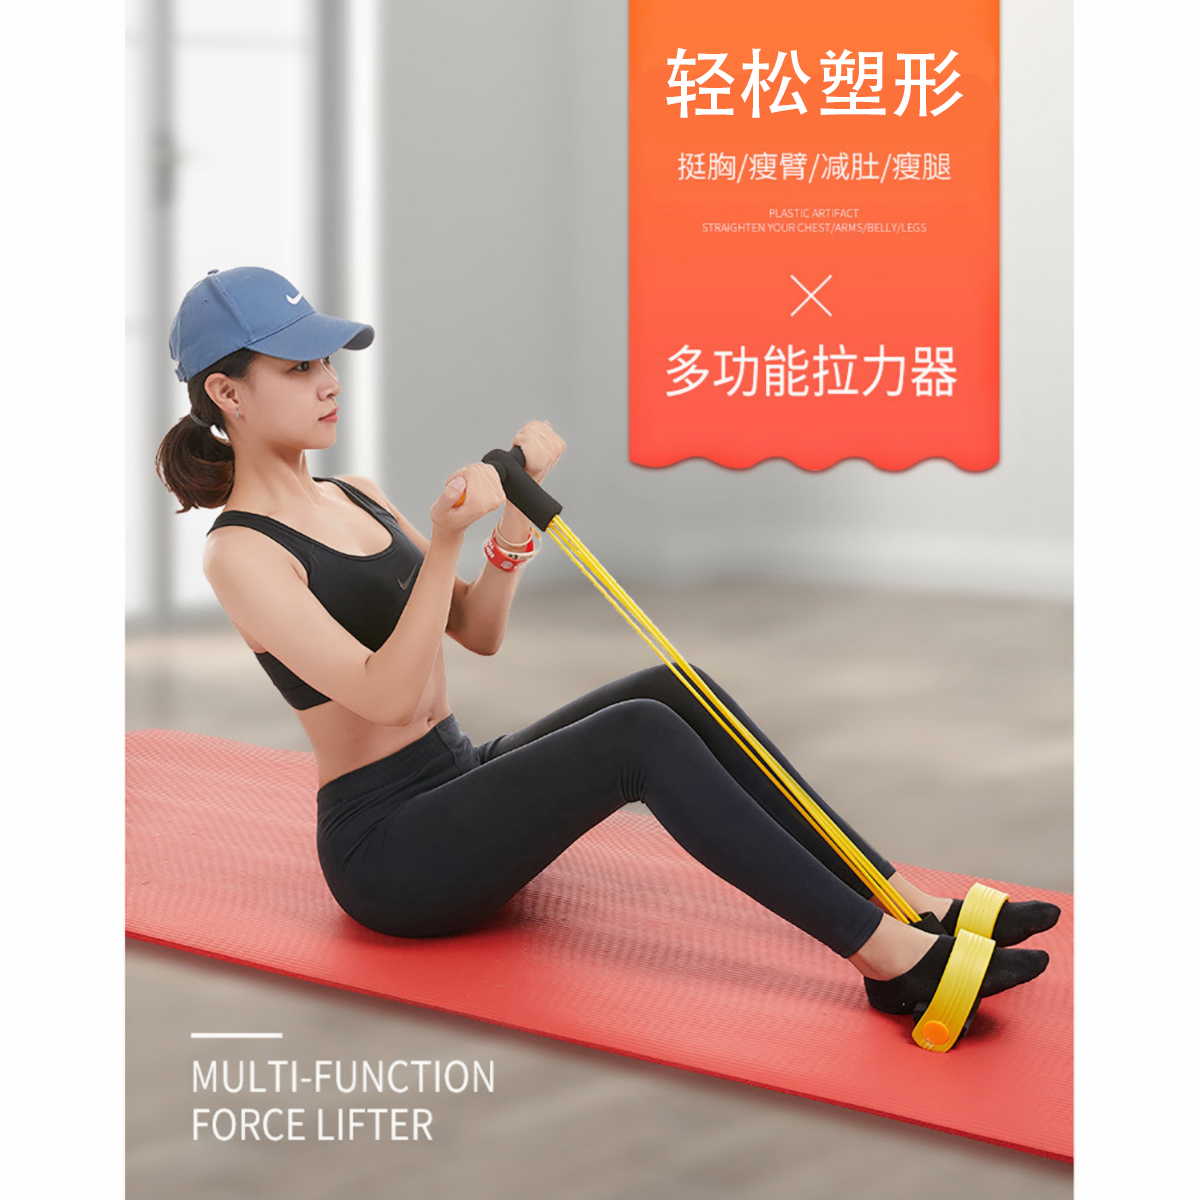 Yoga stretcher thin arm exercise fitness equipment home elastic rope for women to reduce stomach sit up AIDS